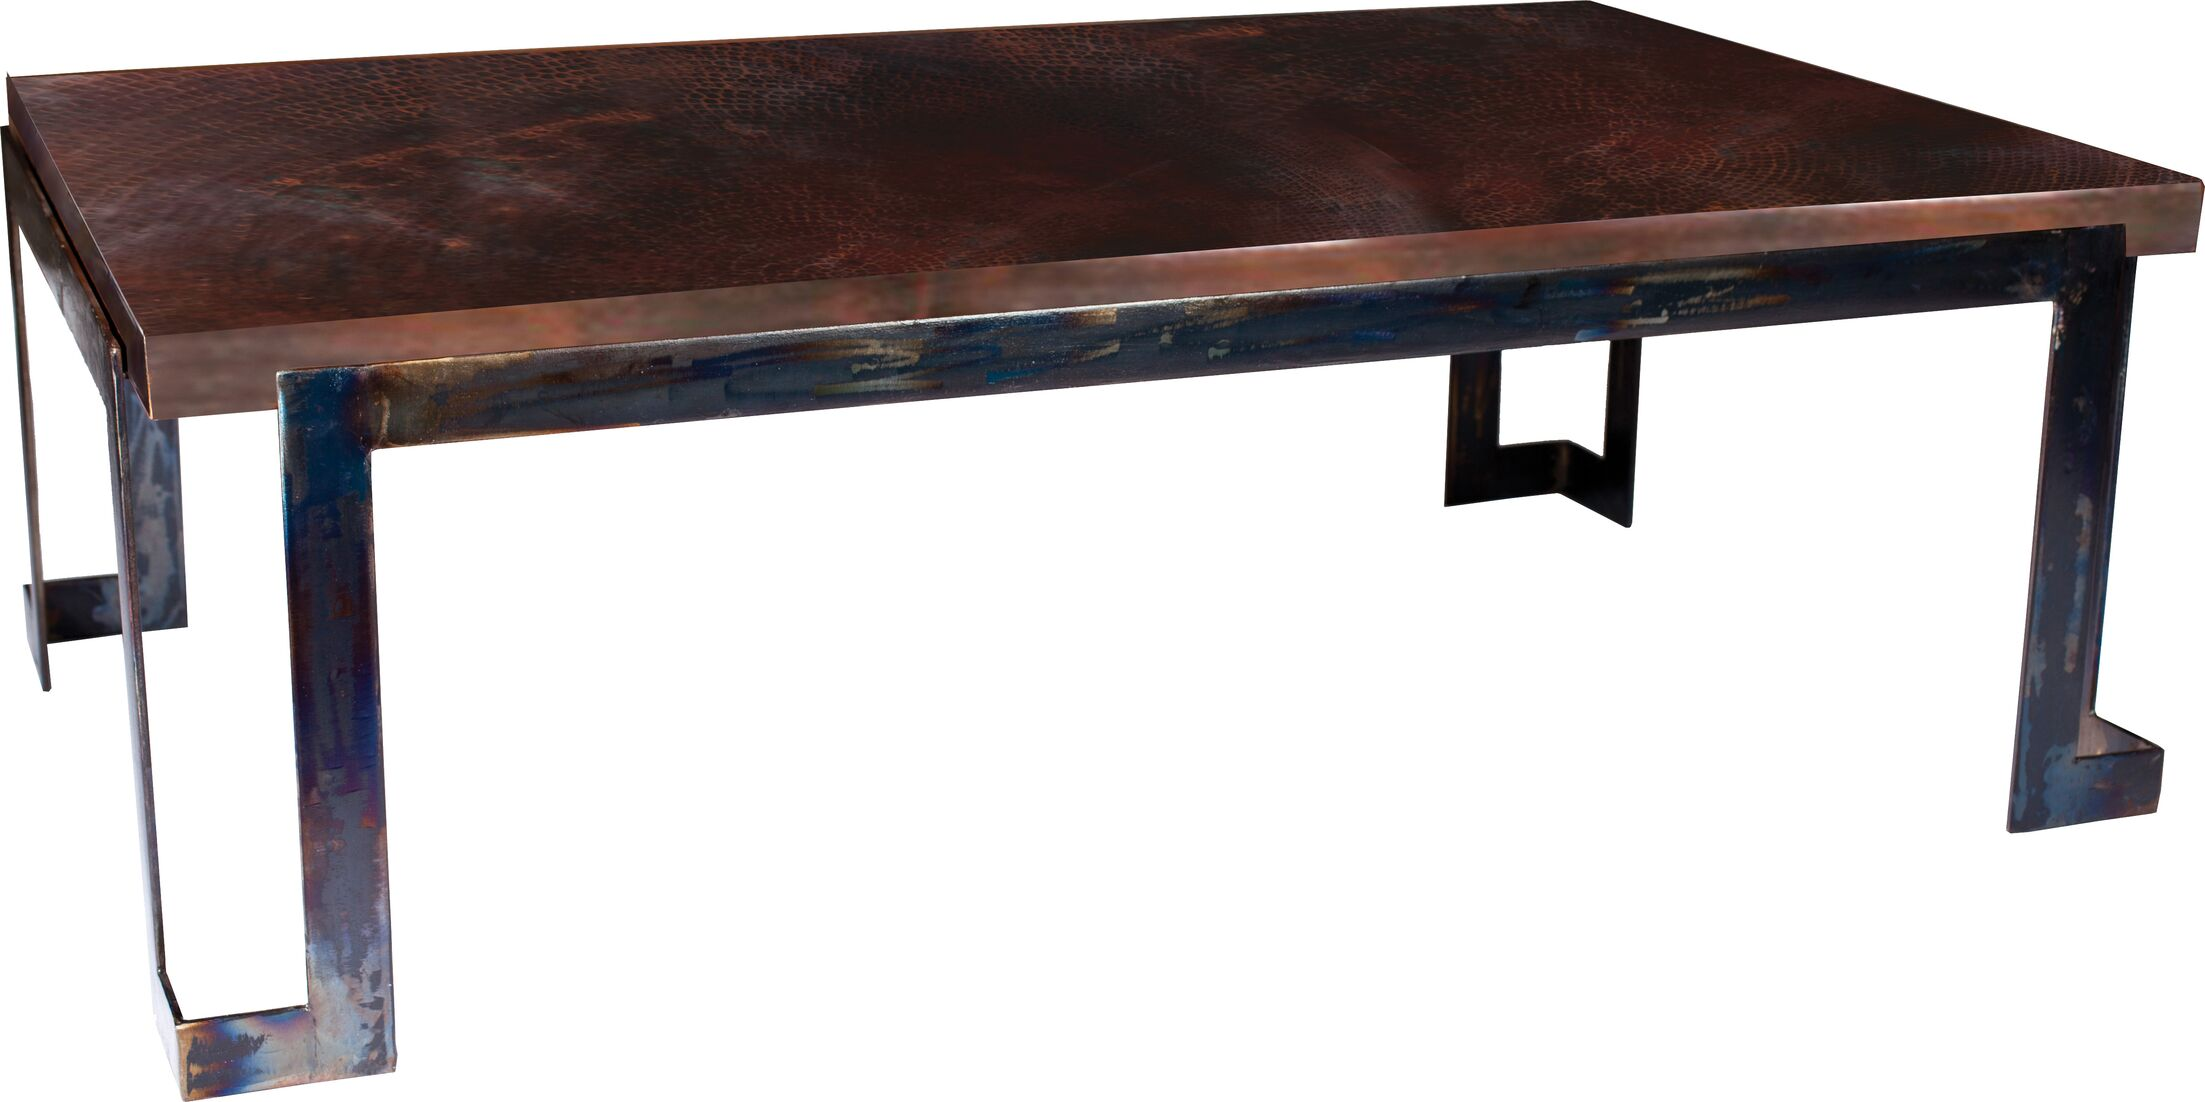 Deasia Steel Strap Coffee Table Table Top Color: Dark Brown Copper